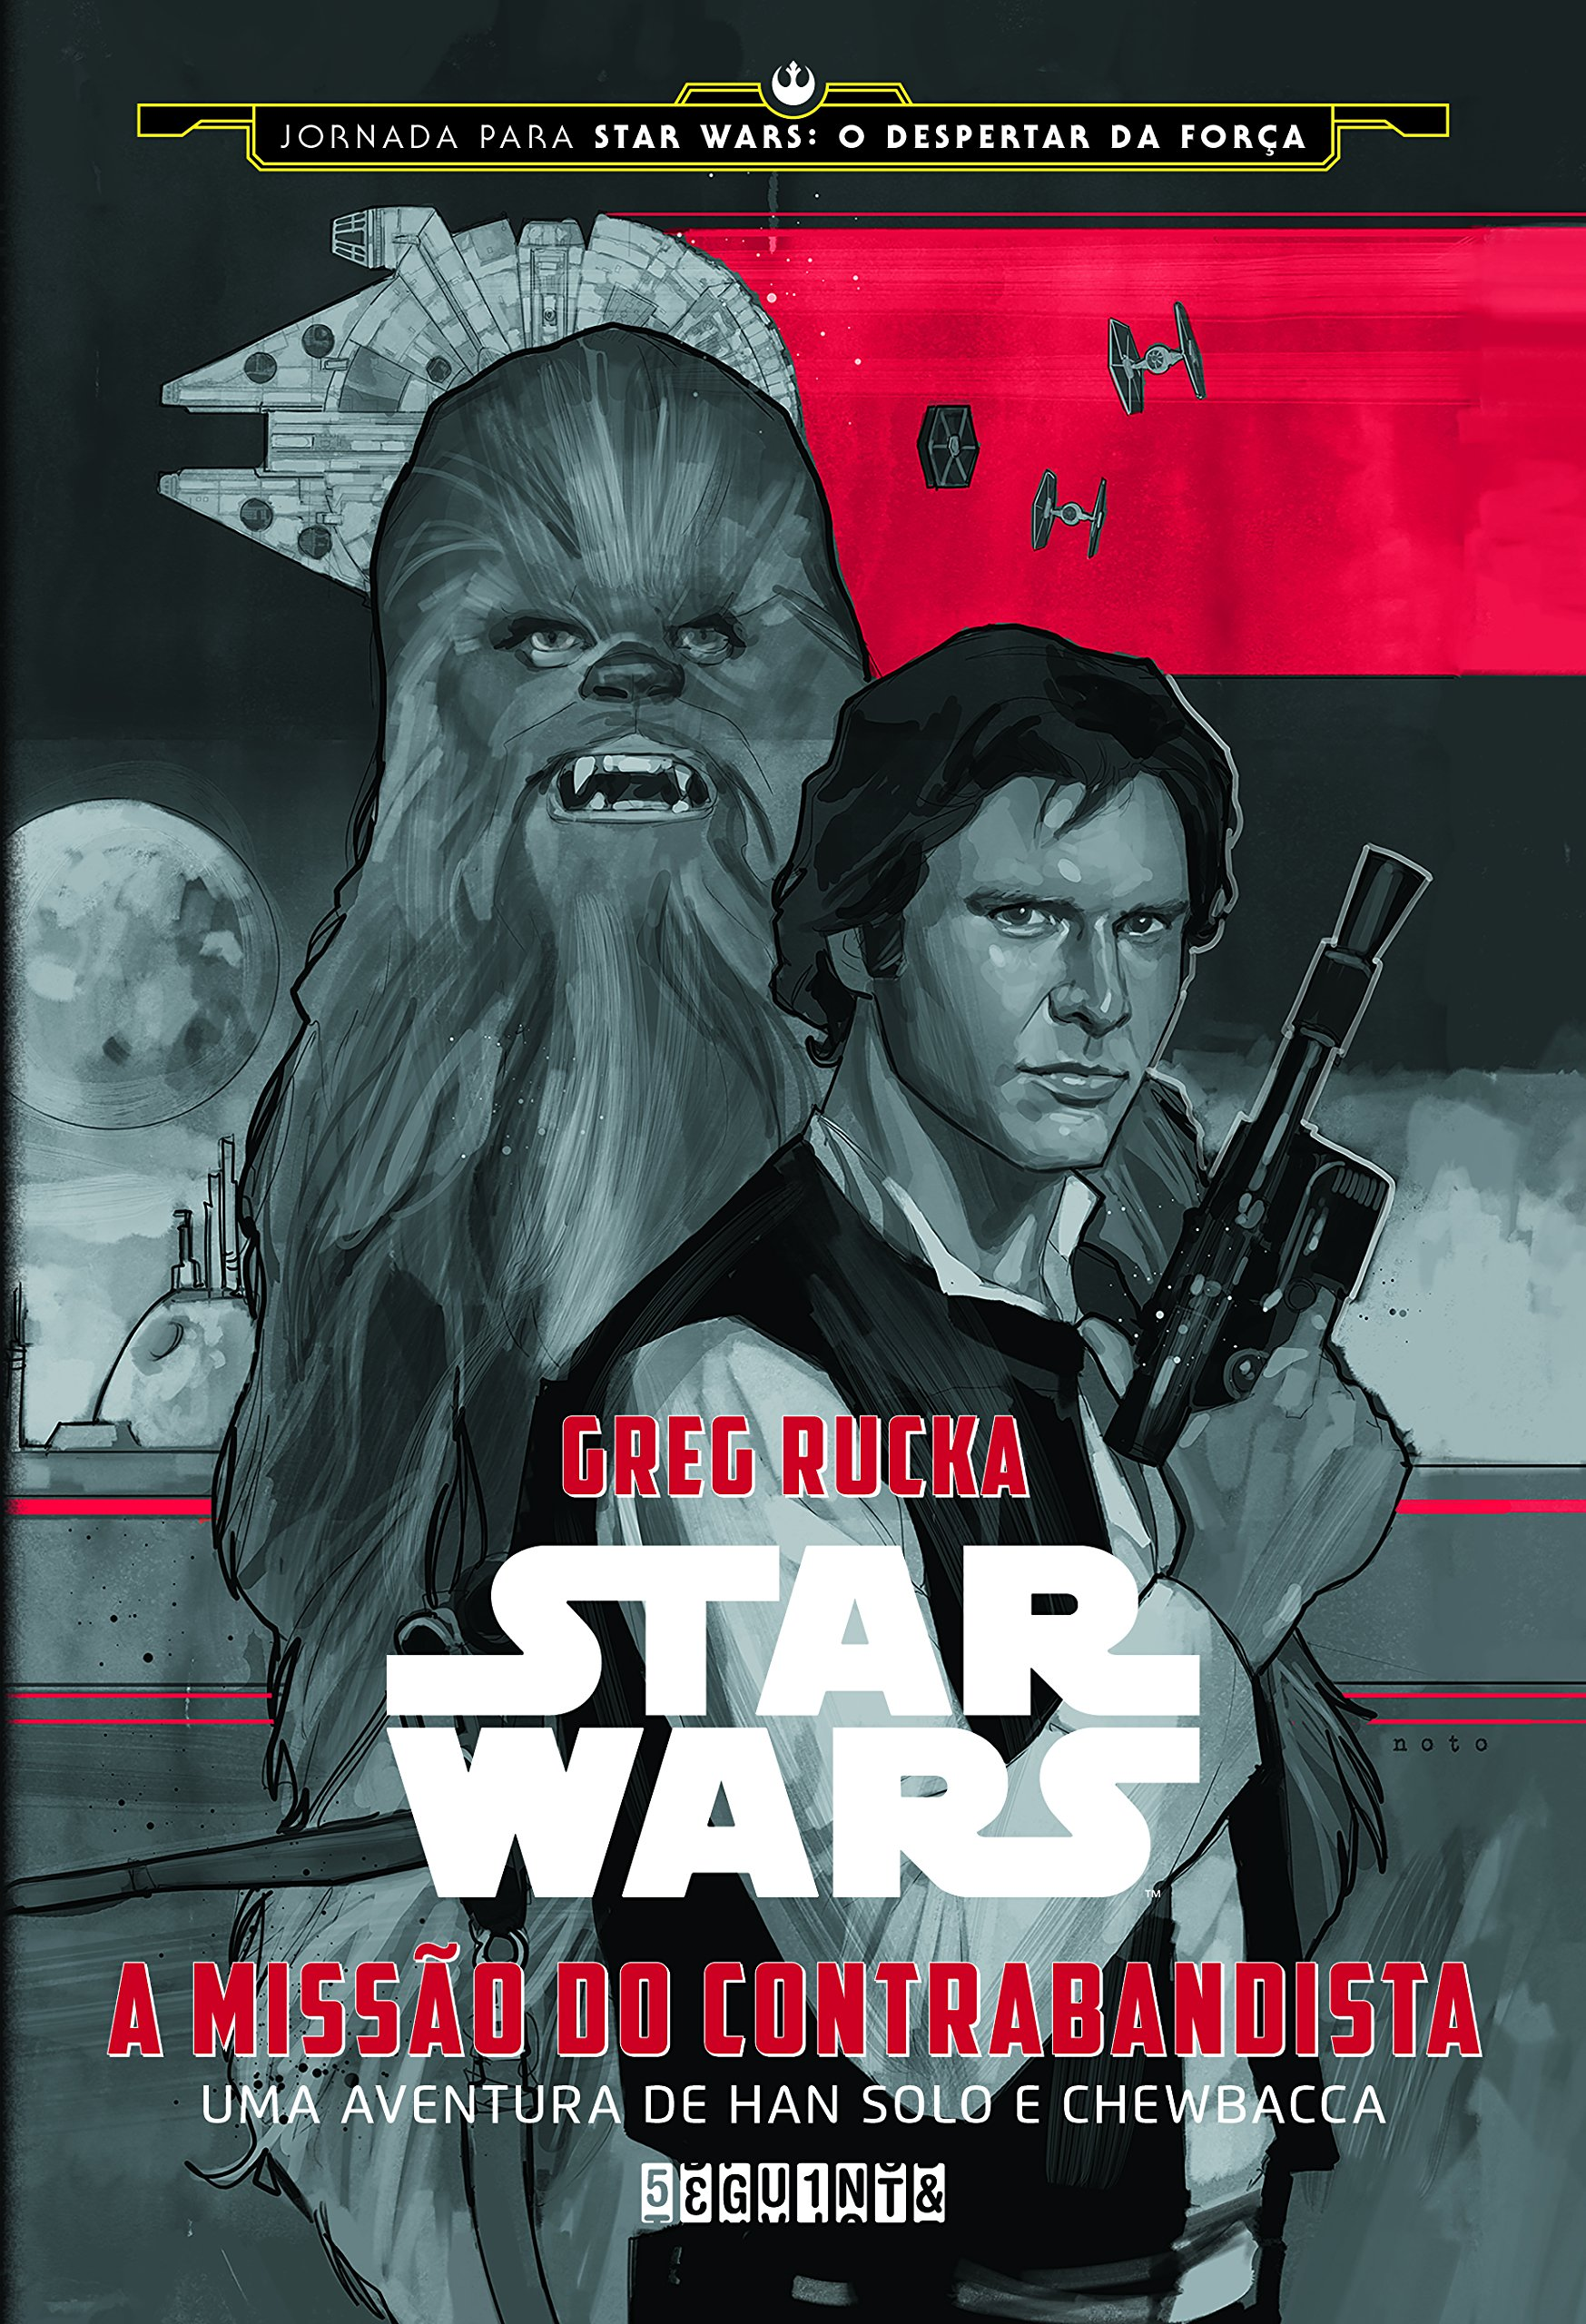 Star Wars - a Missao do Contrabandista - Greg Rucka